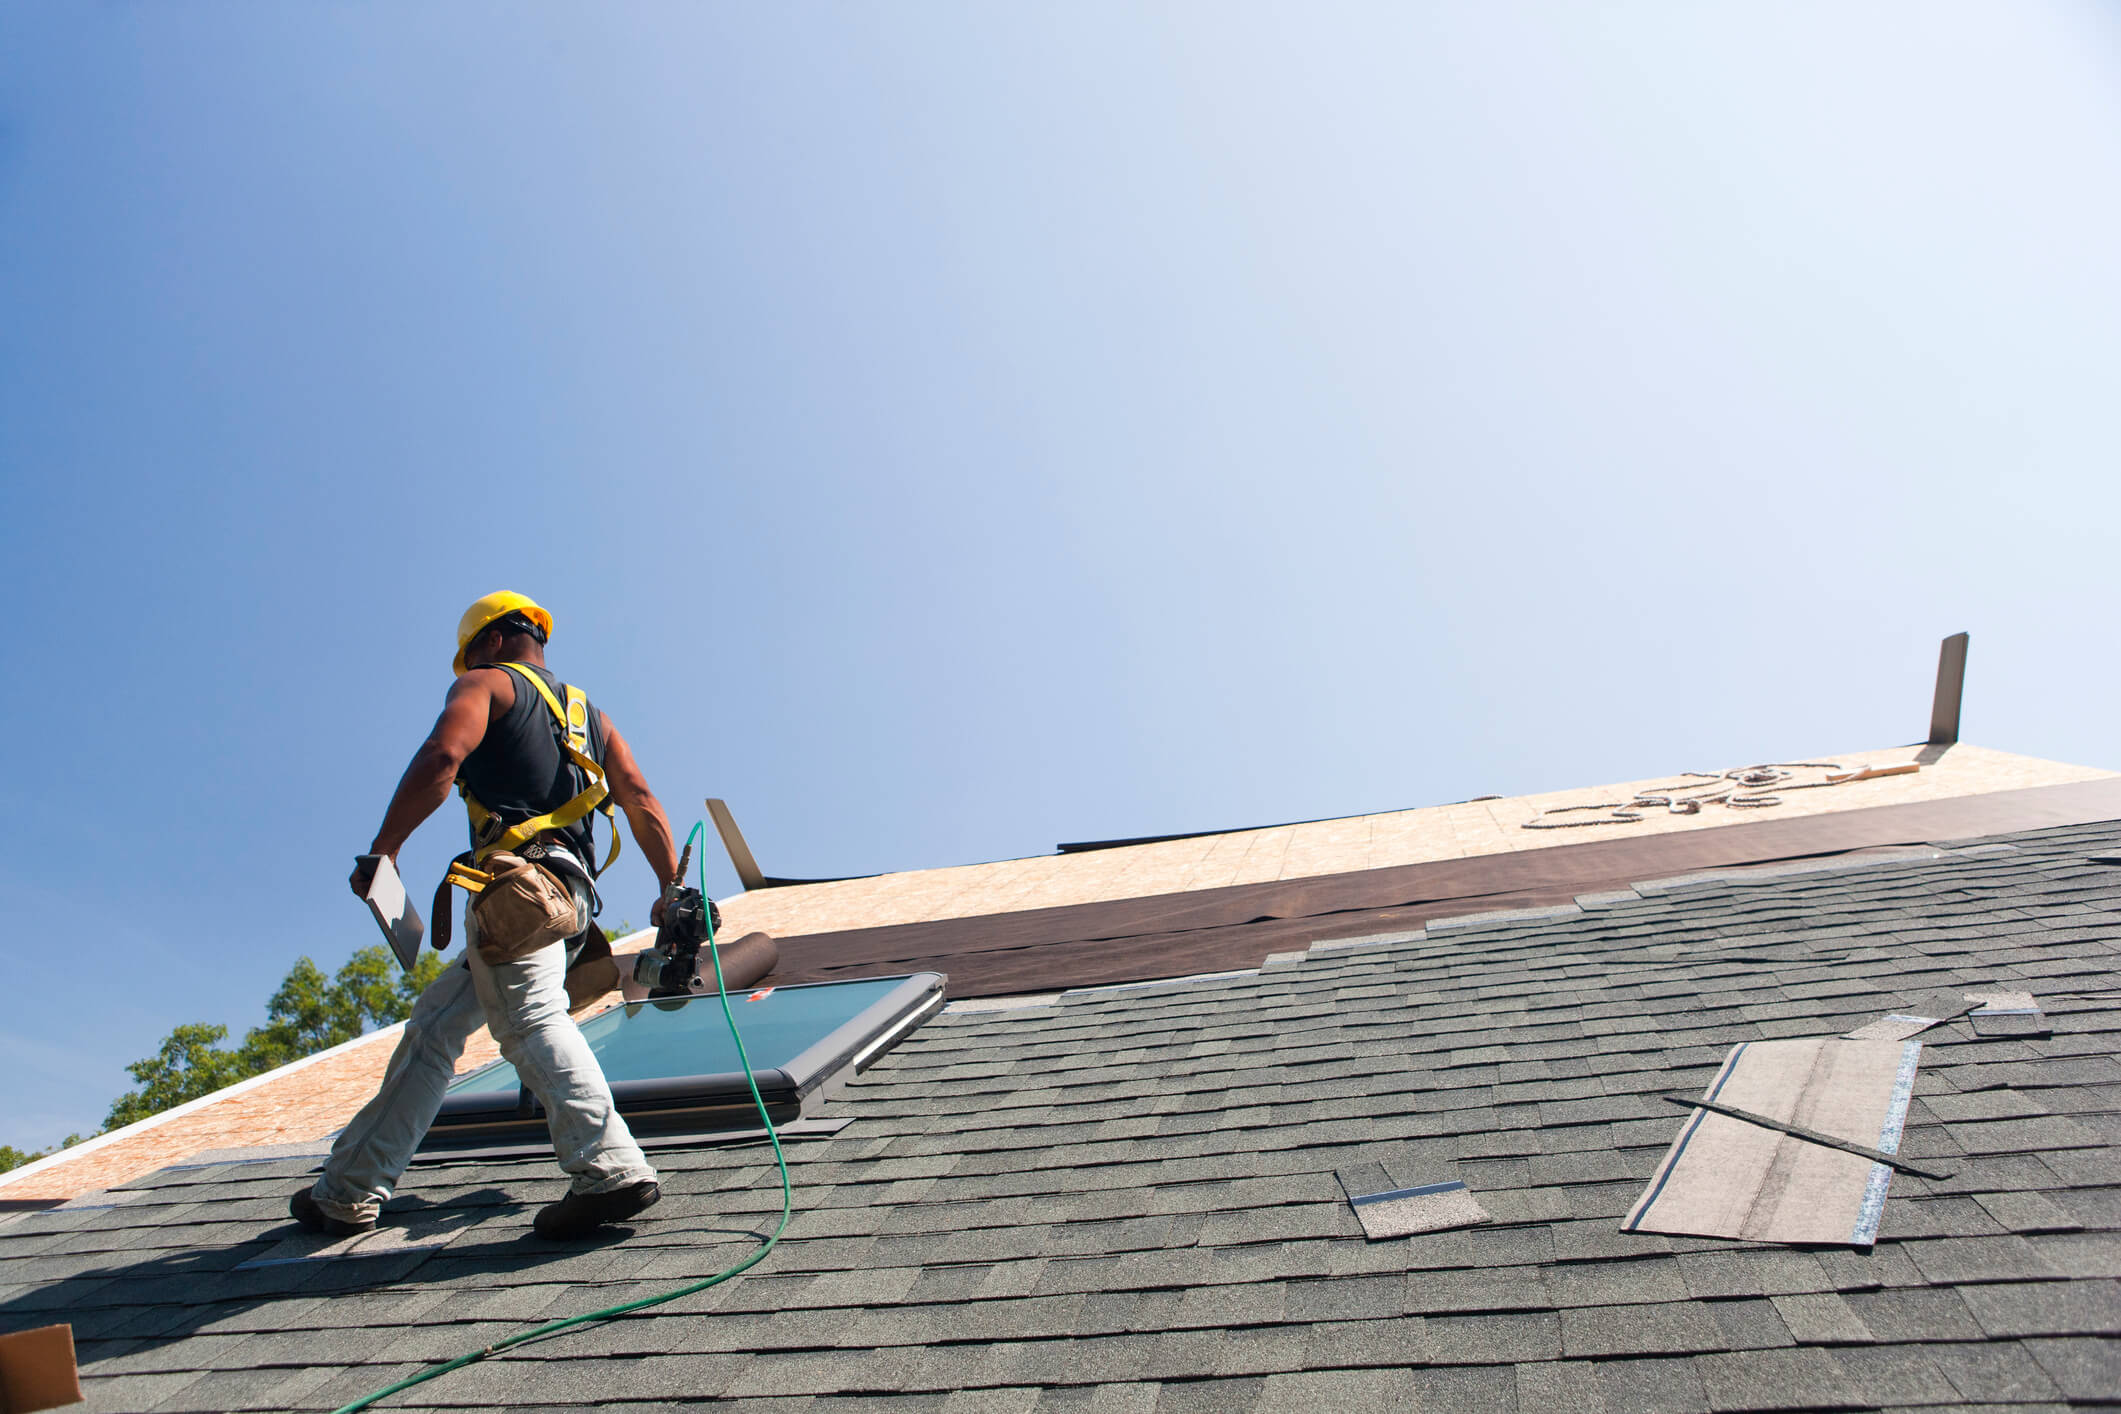 About Our Emergency Roofer In Toms River Nj 08753